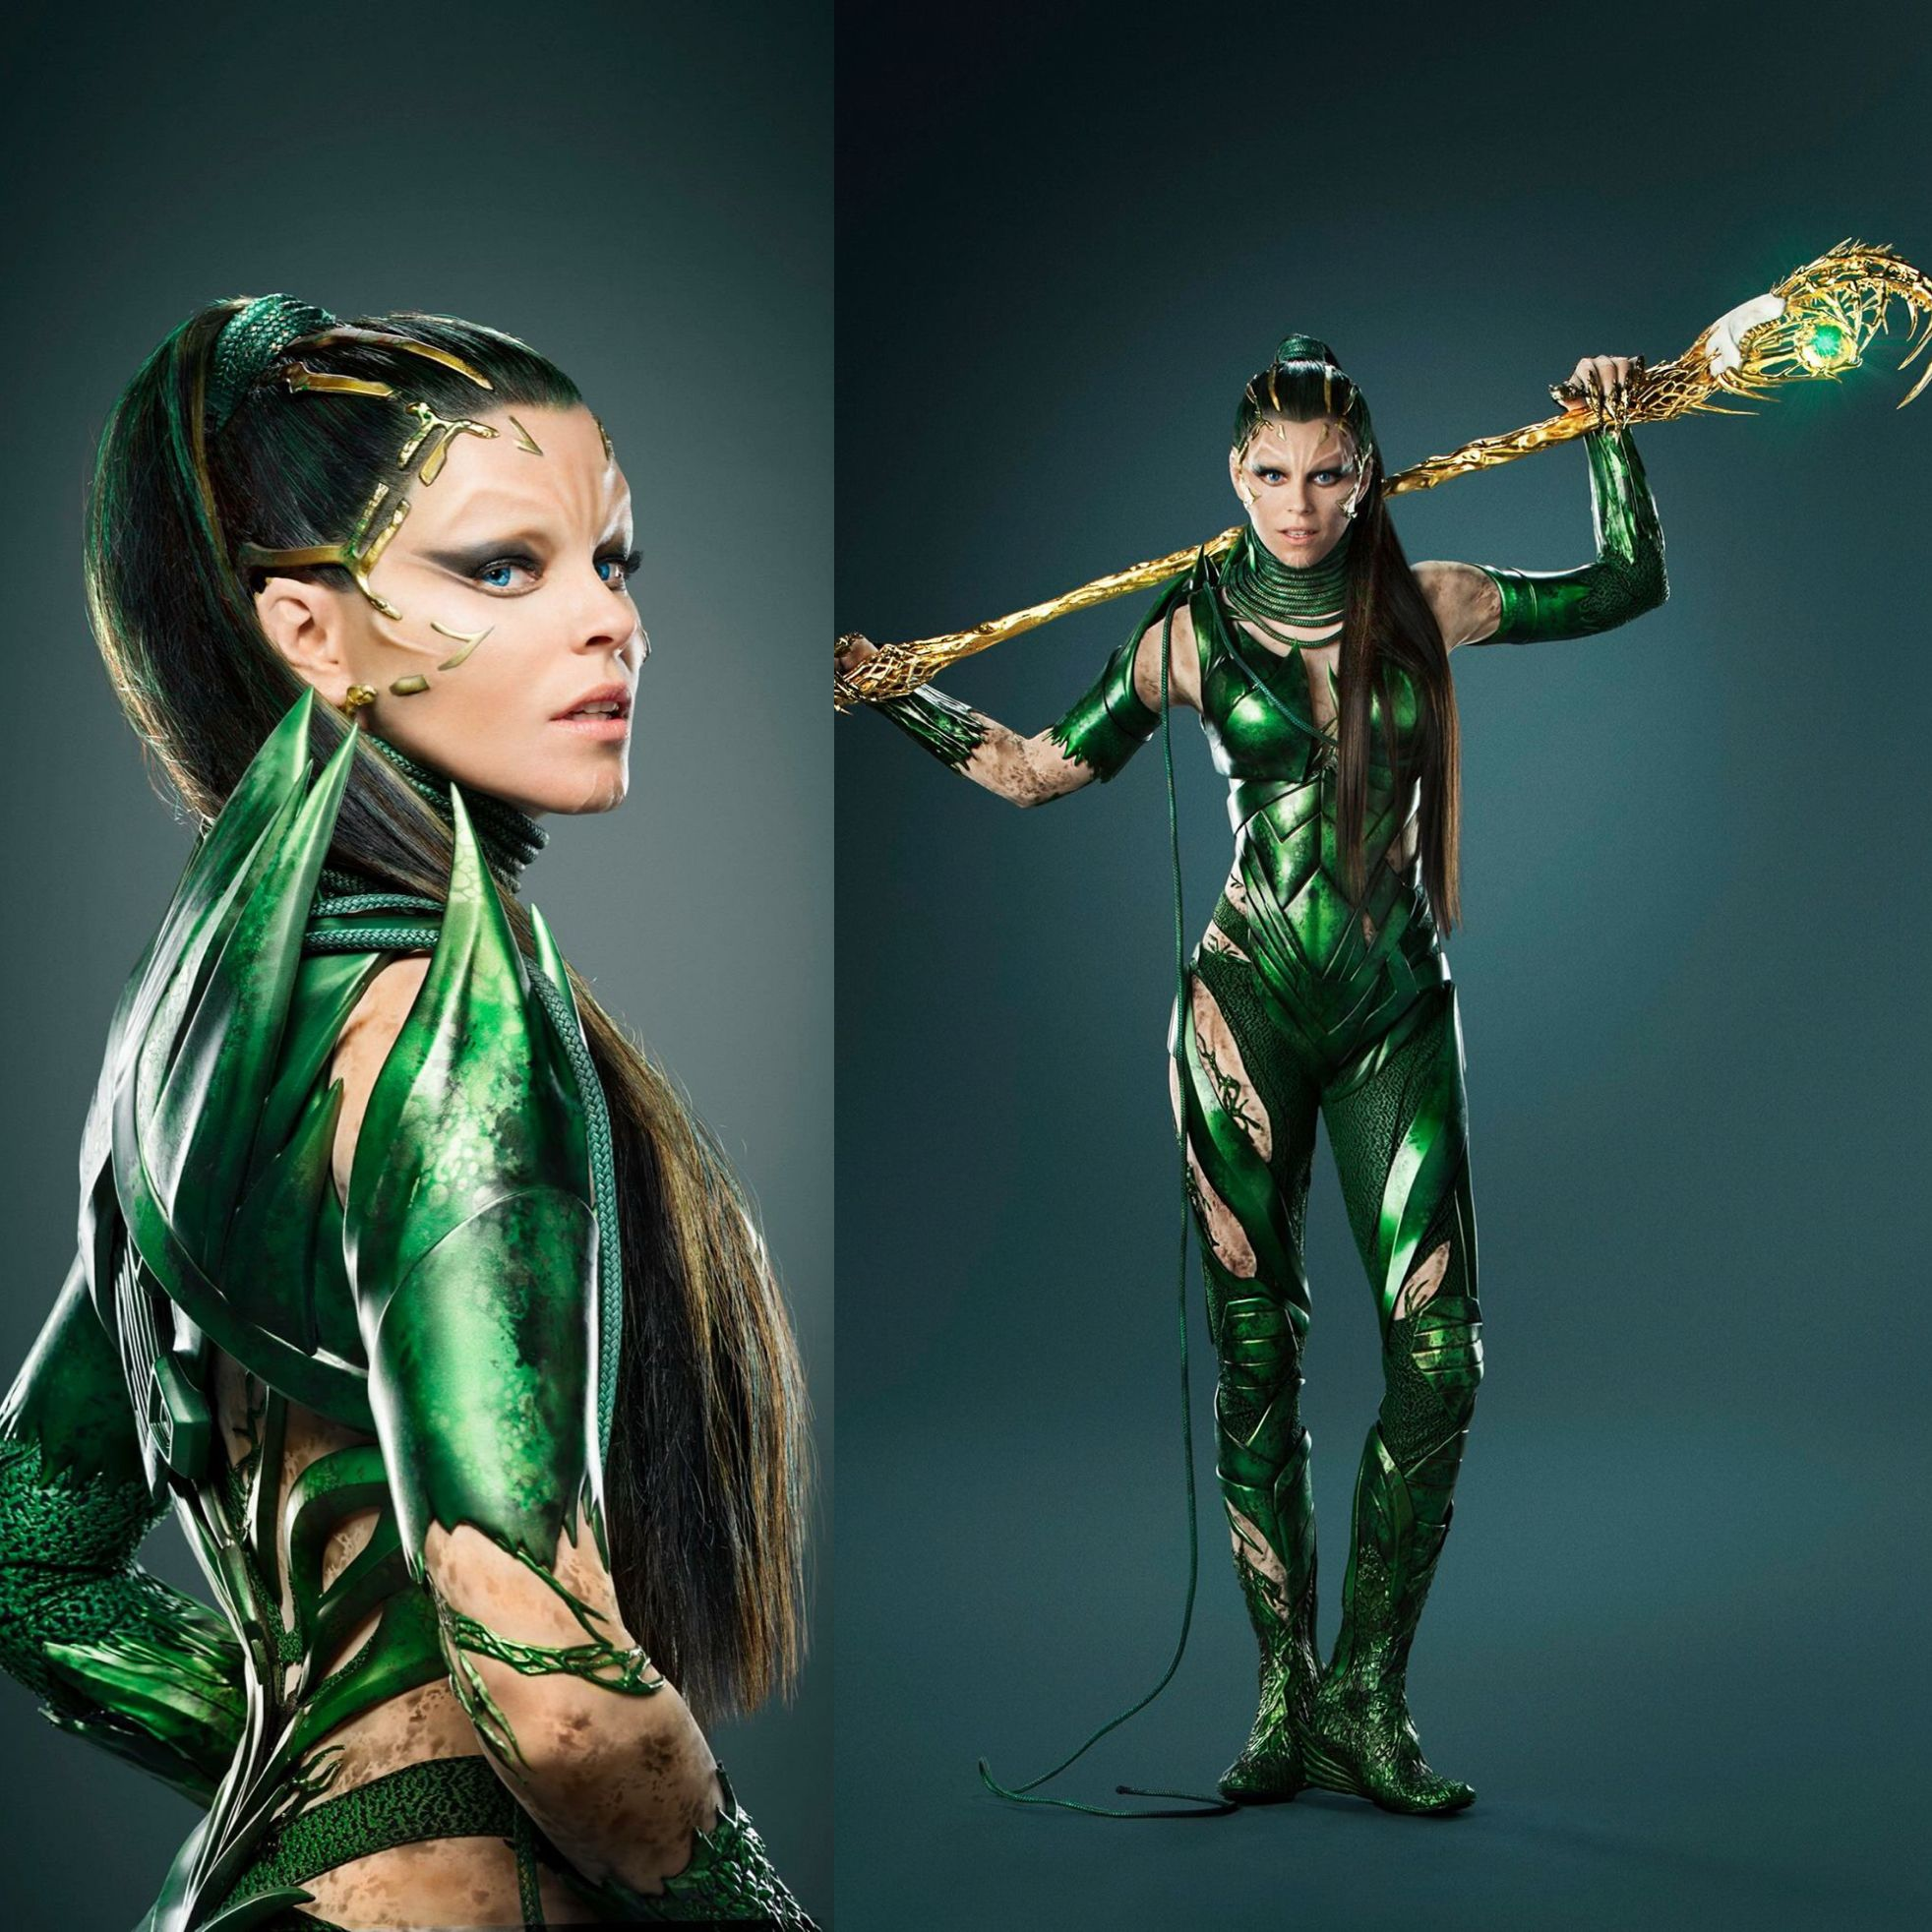 2 New Still Pics From Power Rangers Movie Featuring Elizabeth Banks As Rita Repulsa Power Rangers Hits The Rita Repulsa Power Rangers Power Rangers Costume